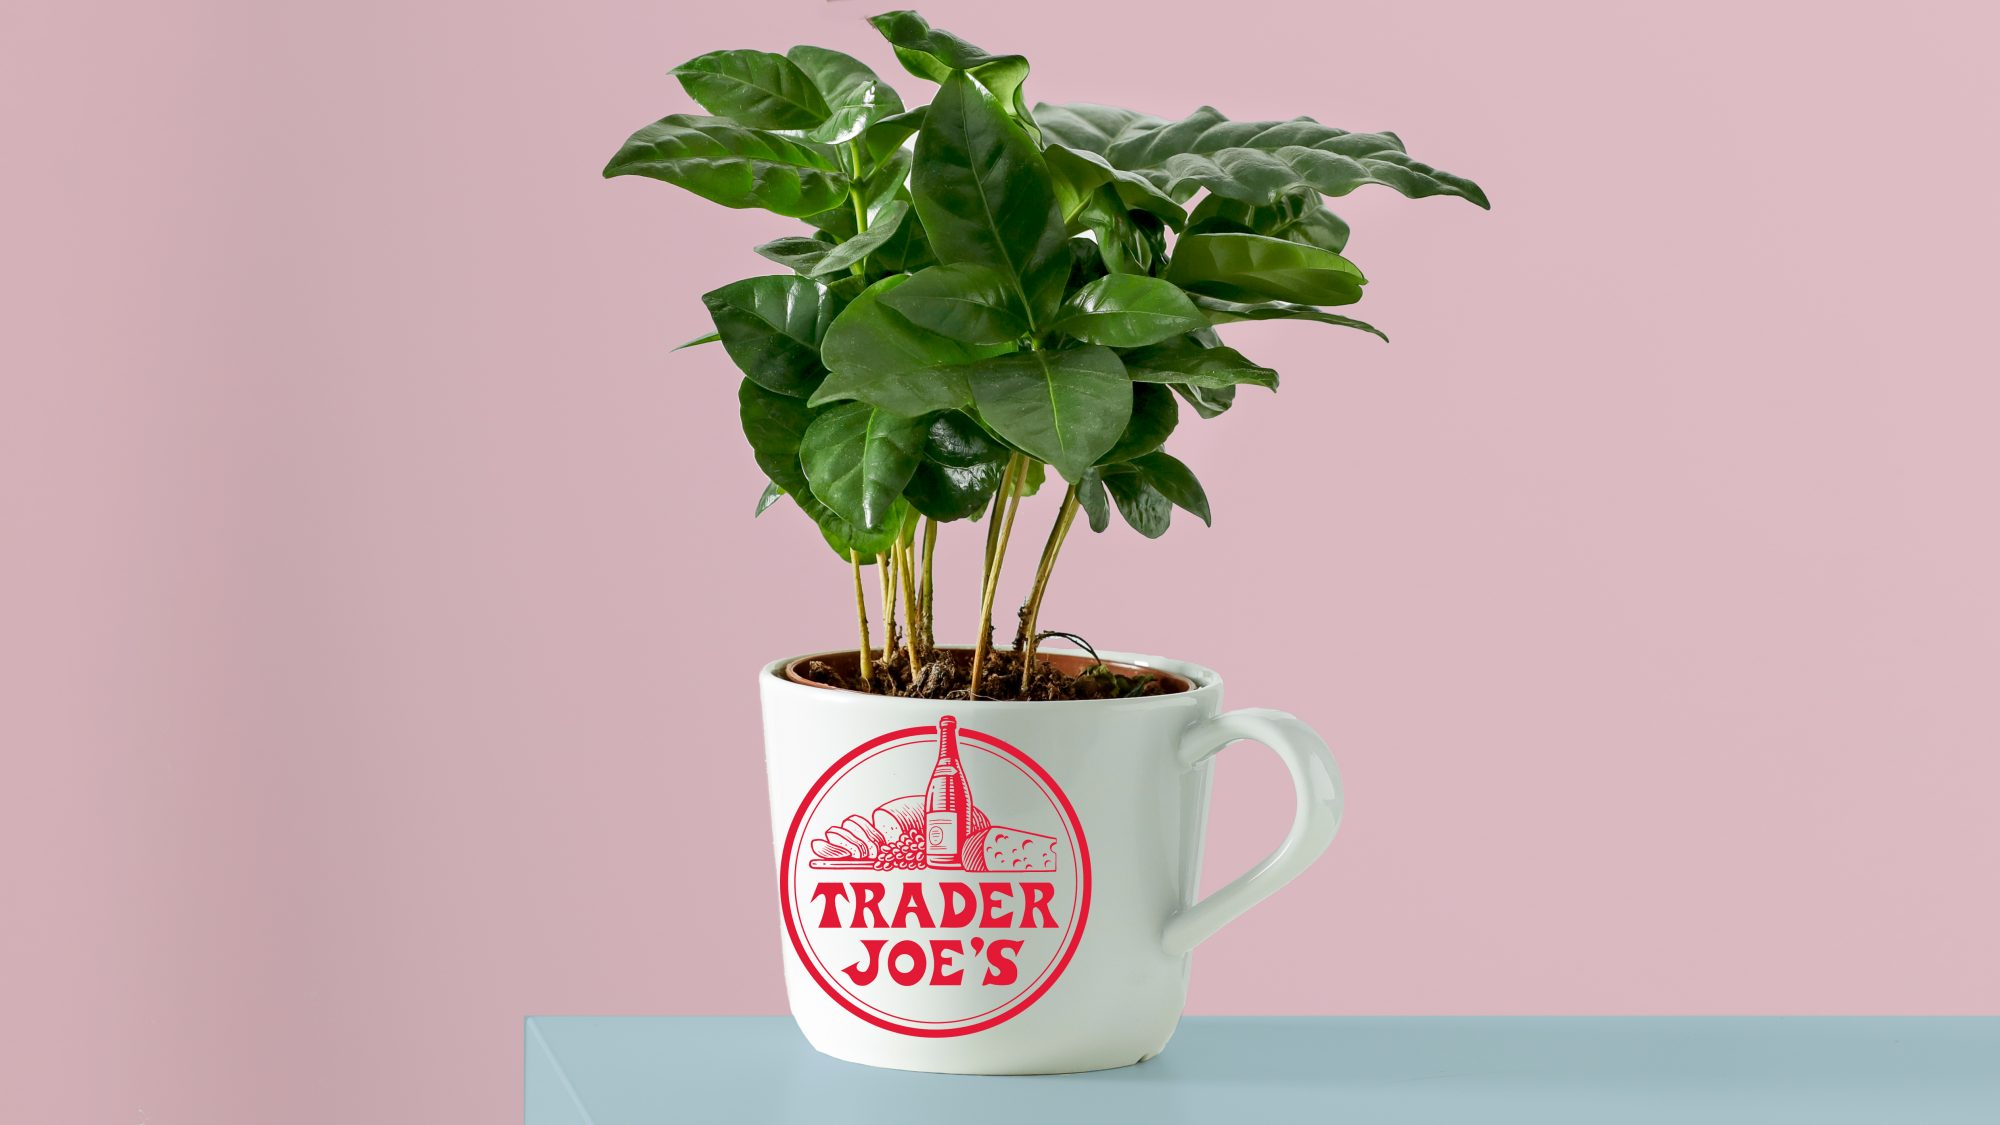 trader joes coffee plants